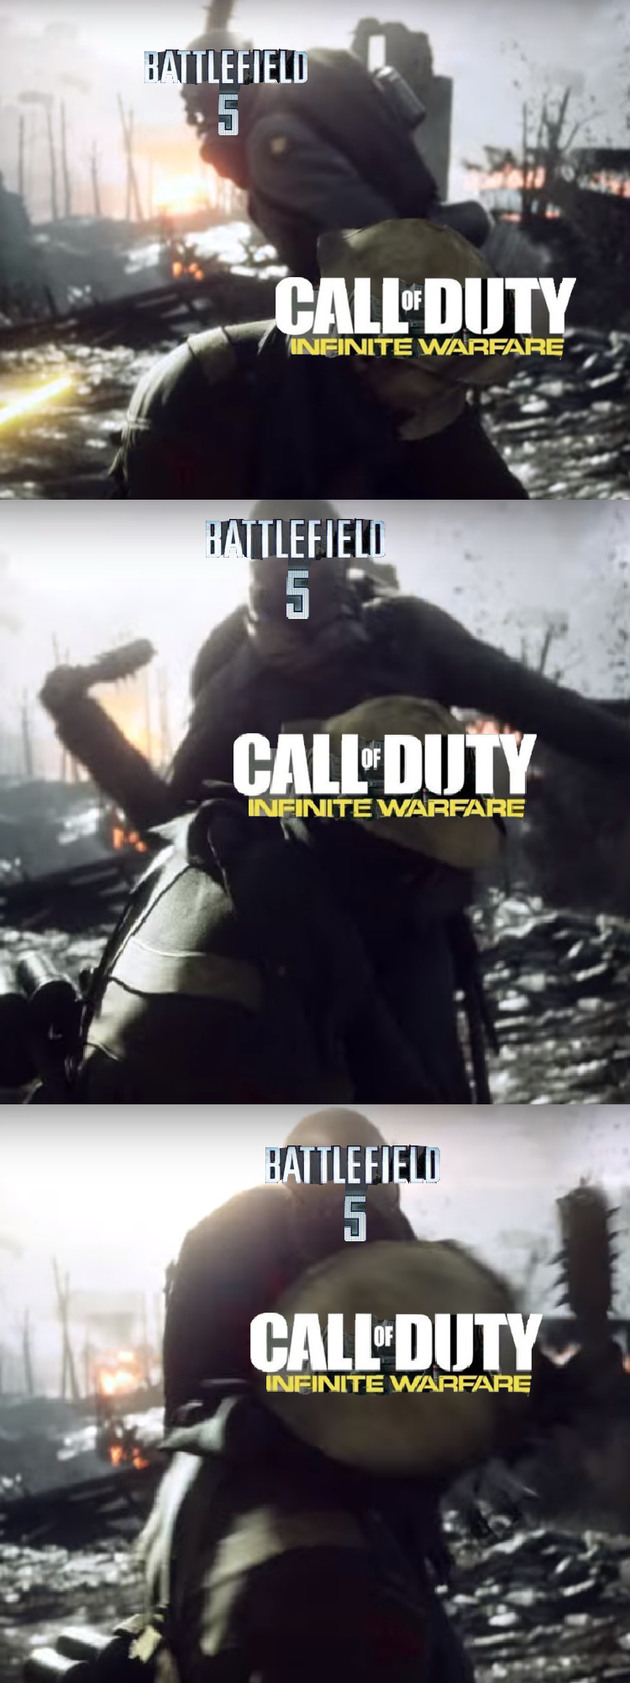 All Aboard the Battlefield Hype Train - meme